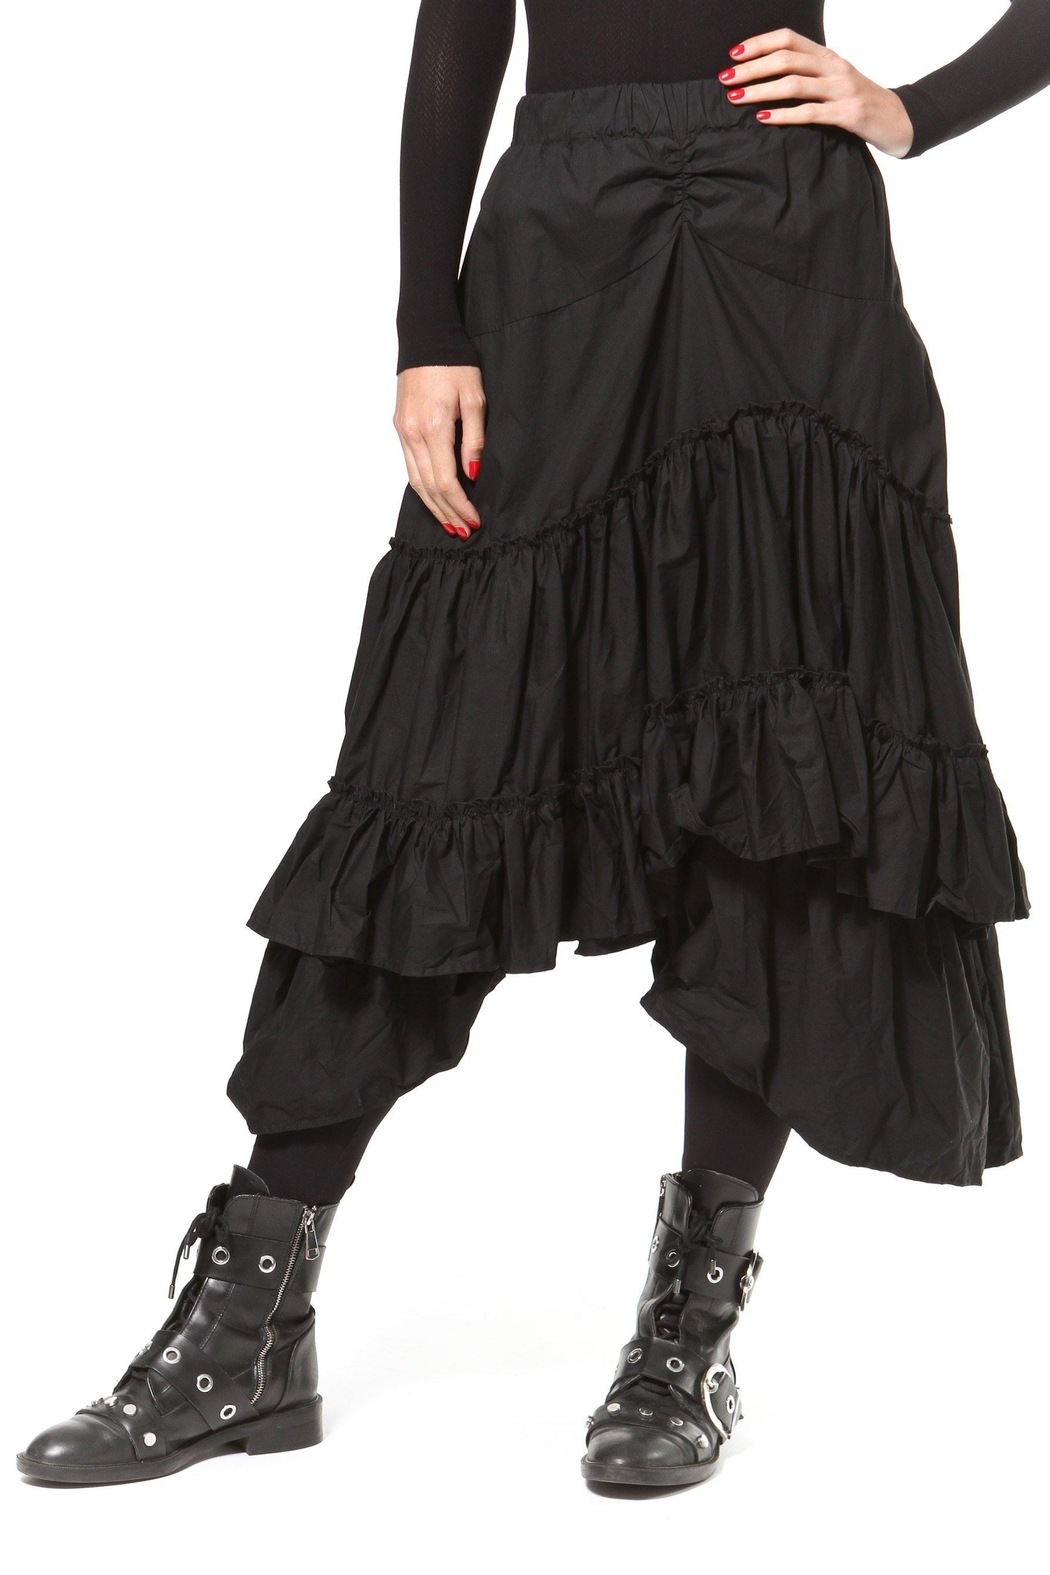 Madonna & Co Asymmetrical Tiered Skirt - Main Image